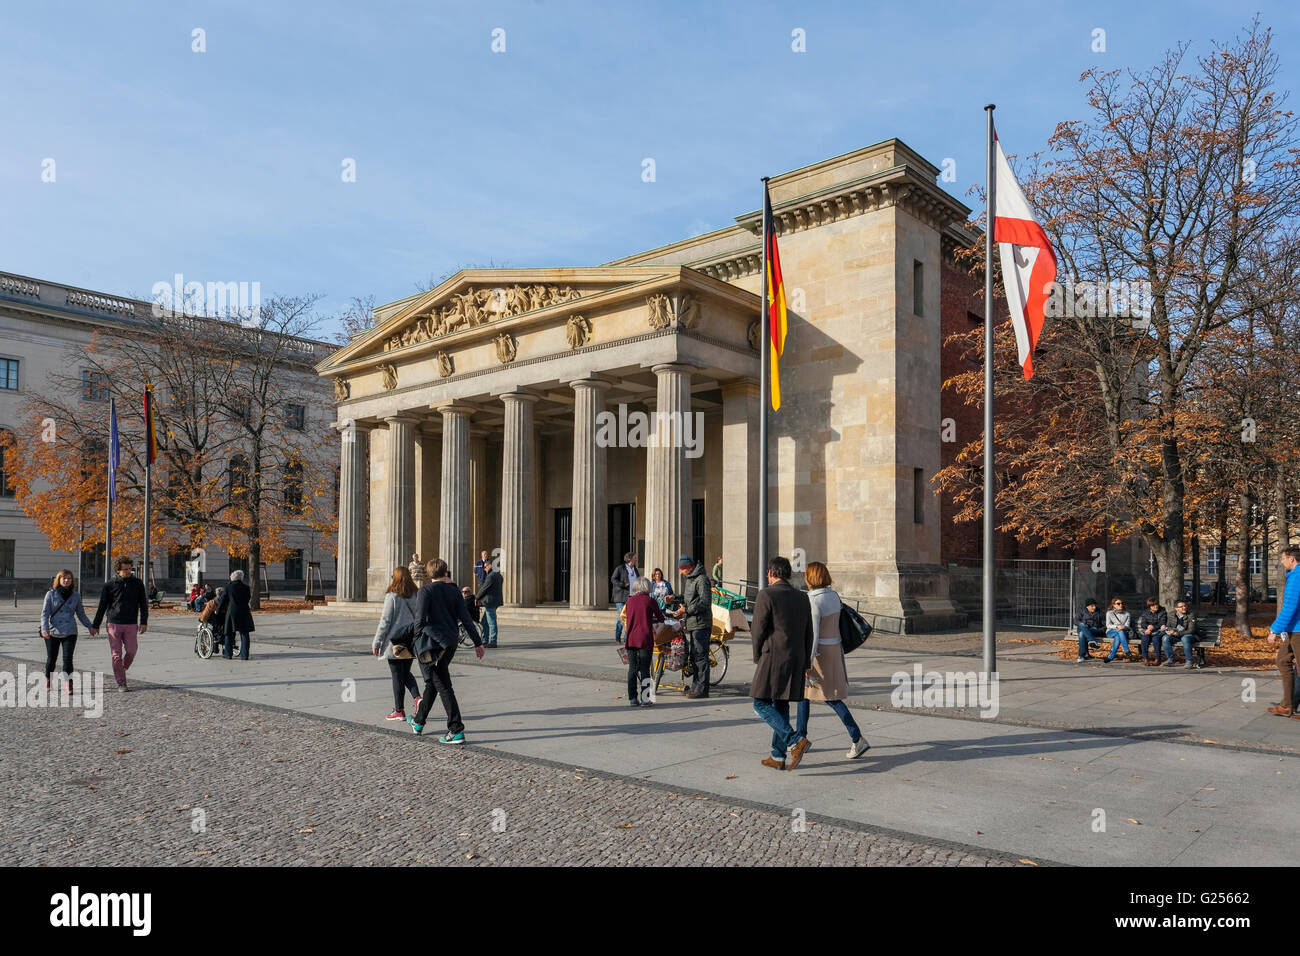 Neue Wache, New Guardhouse, Central Memorial of the Federal Republic of Germany for the Victims of War and Dictatorship. - Stock Image